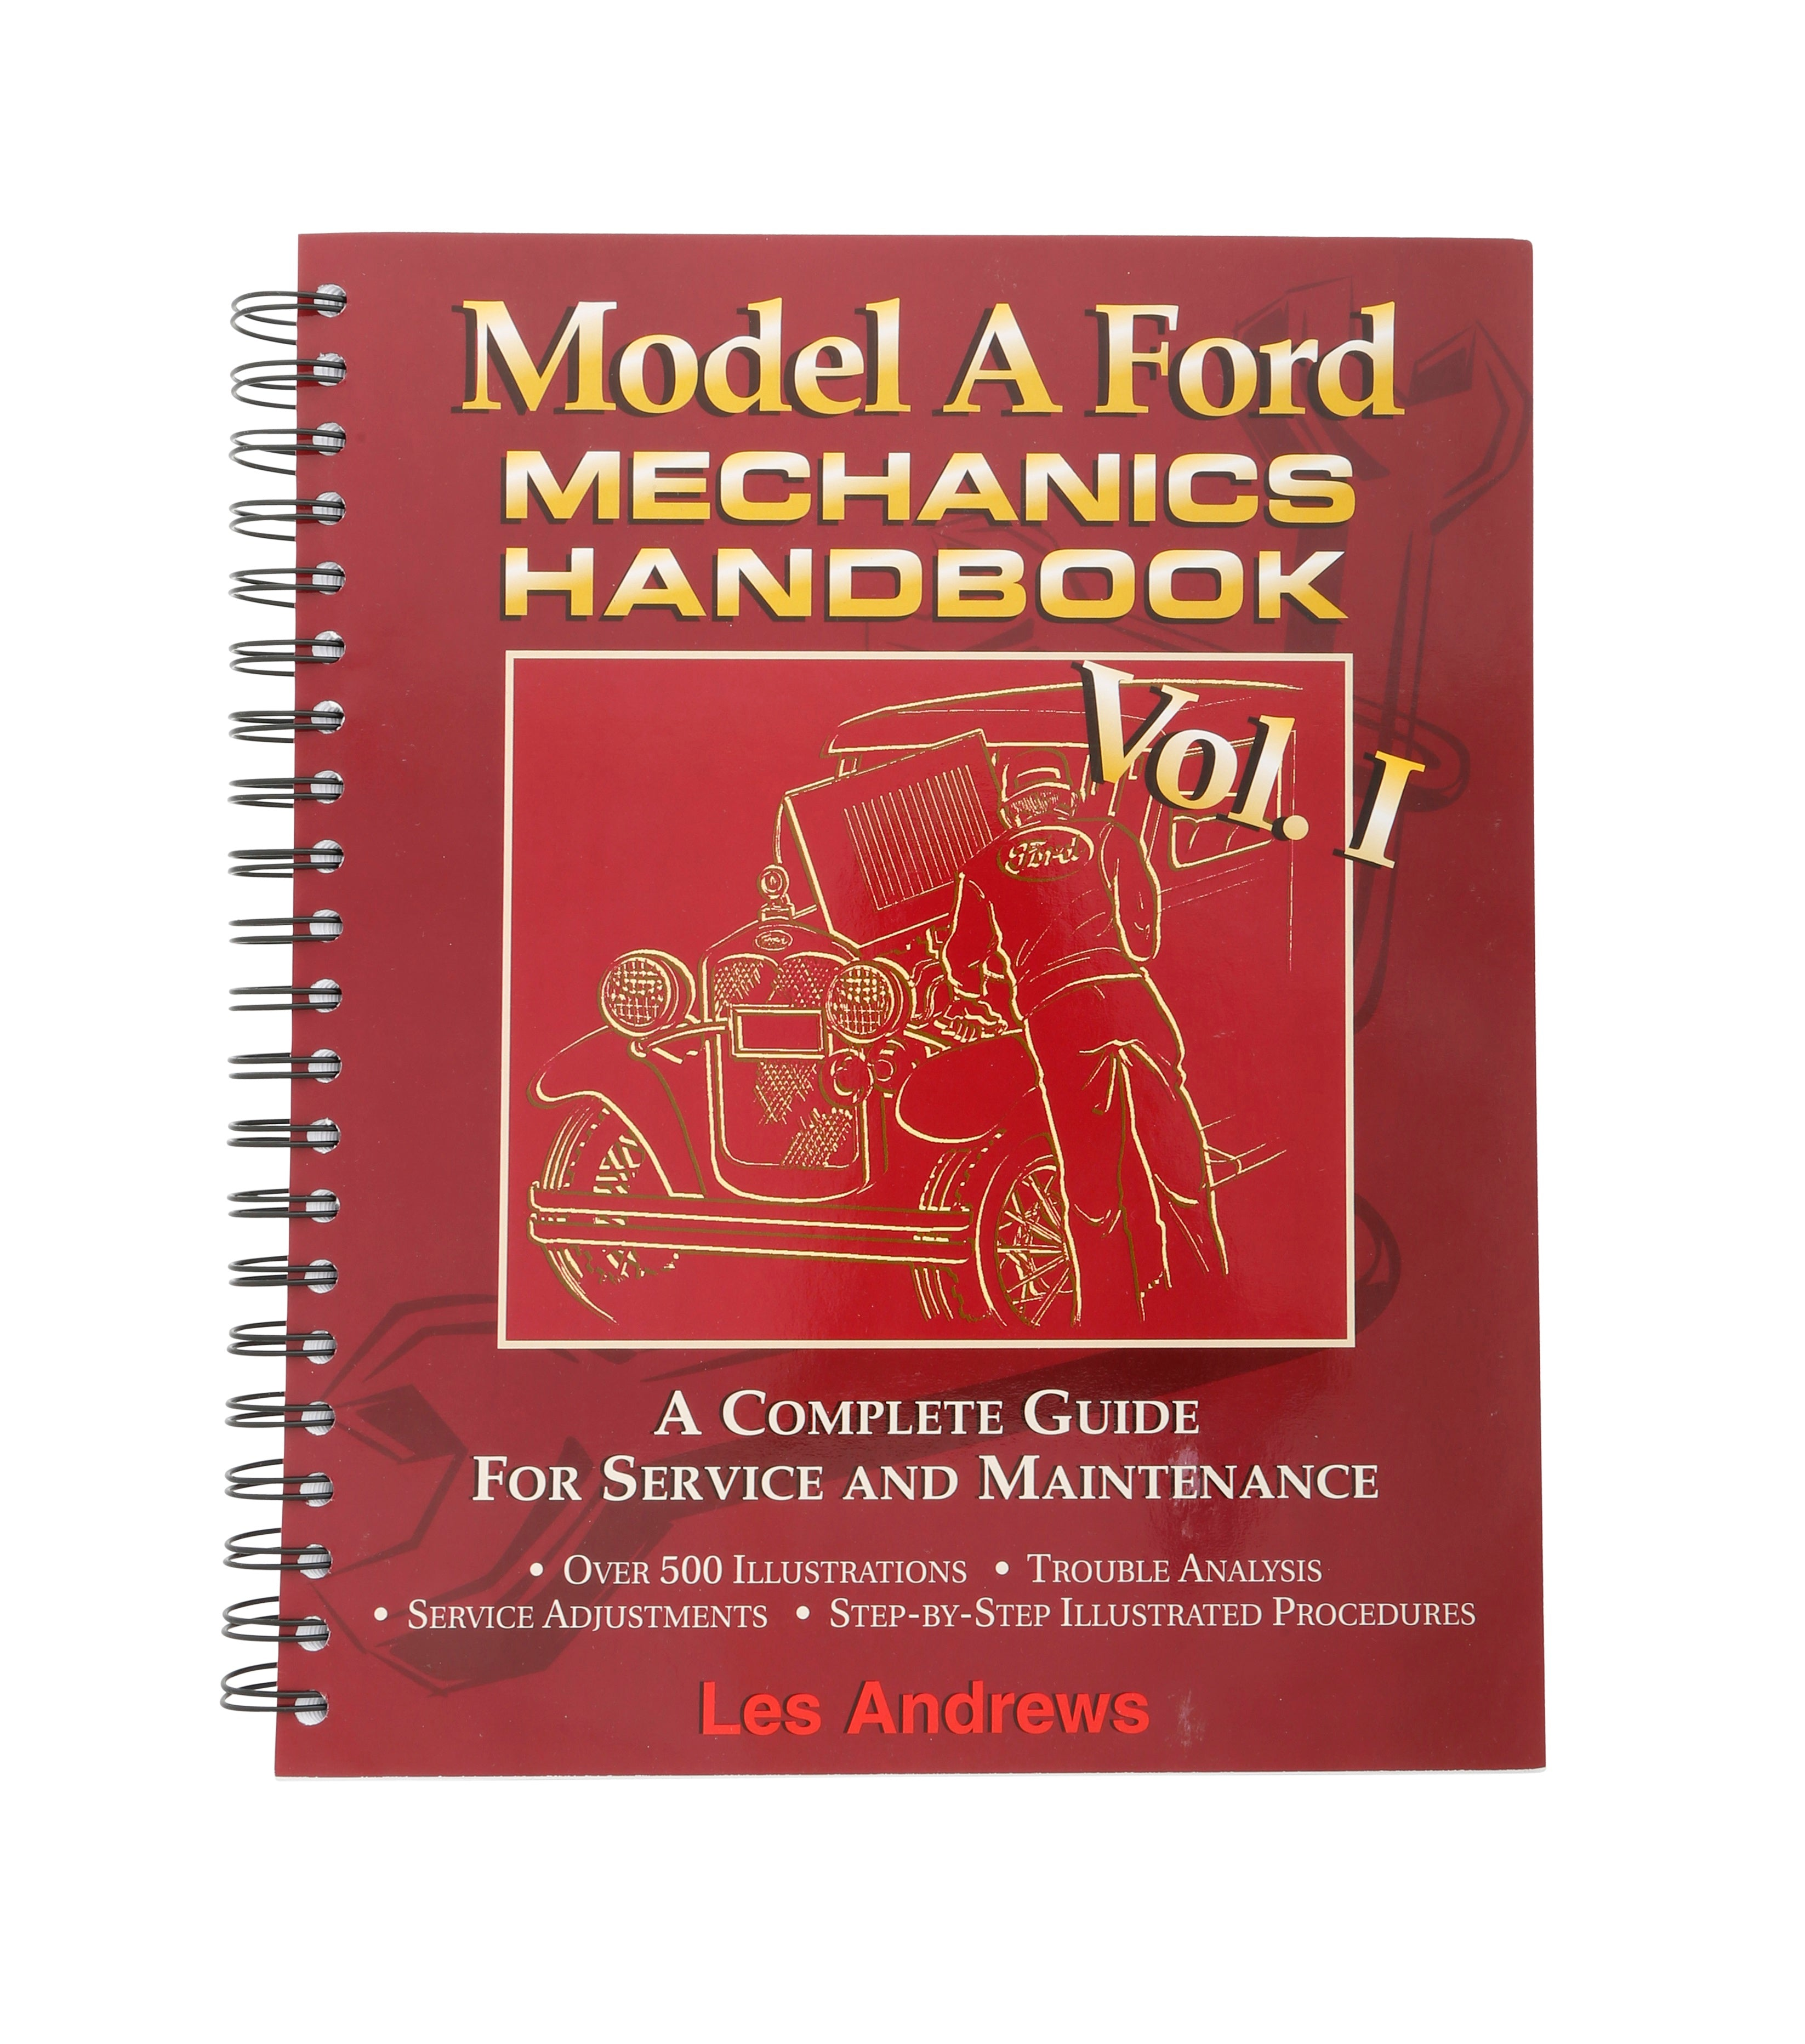 Model A Ford Mechanics Handbook • Volume I